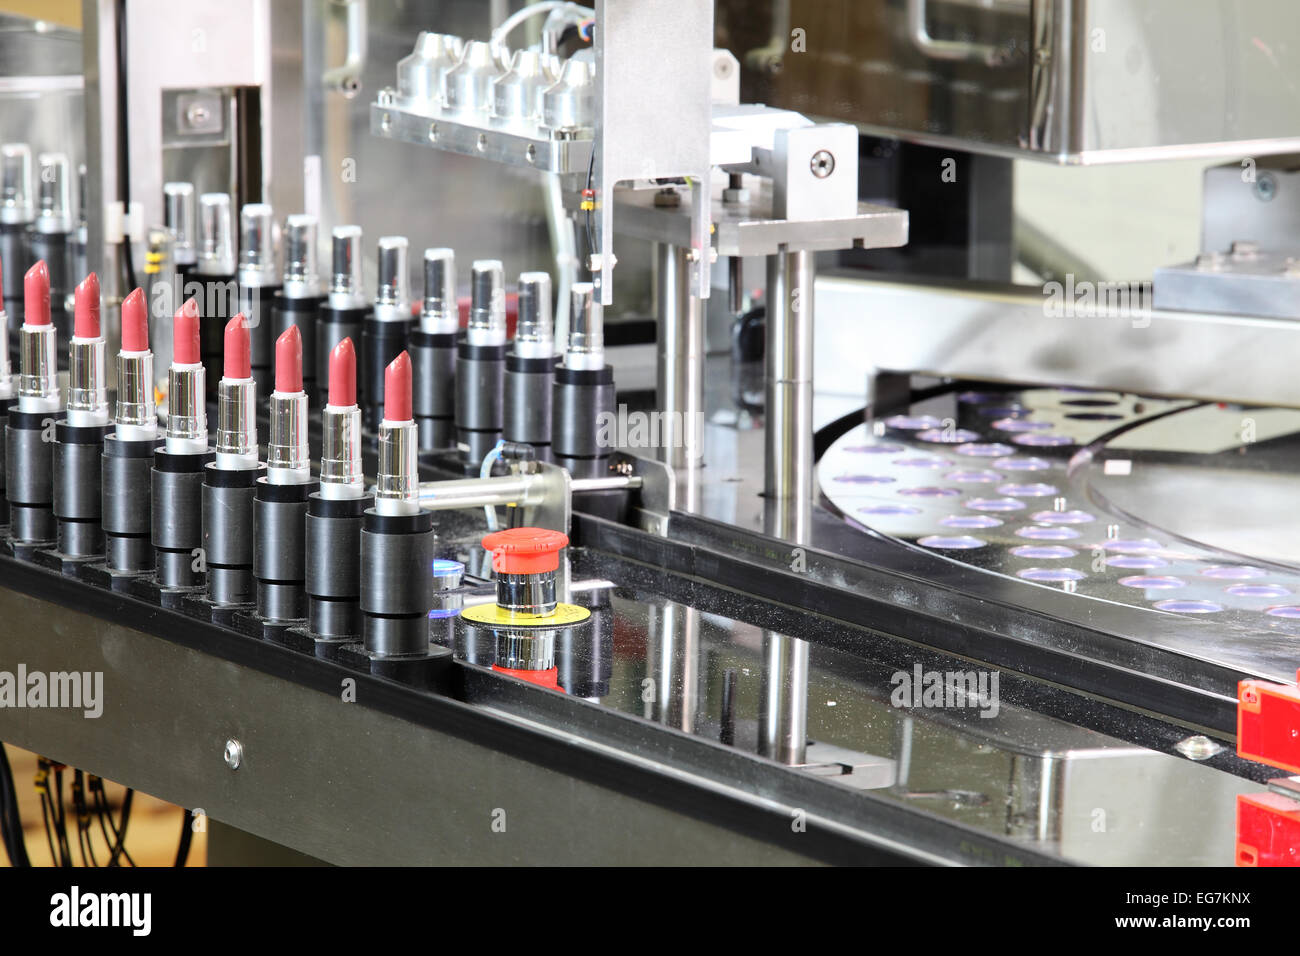 A Lipstick Packaging Machine In A Cosmetics Factory Stock